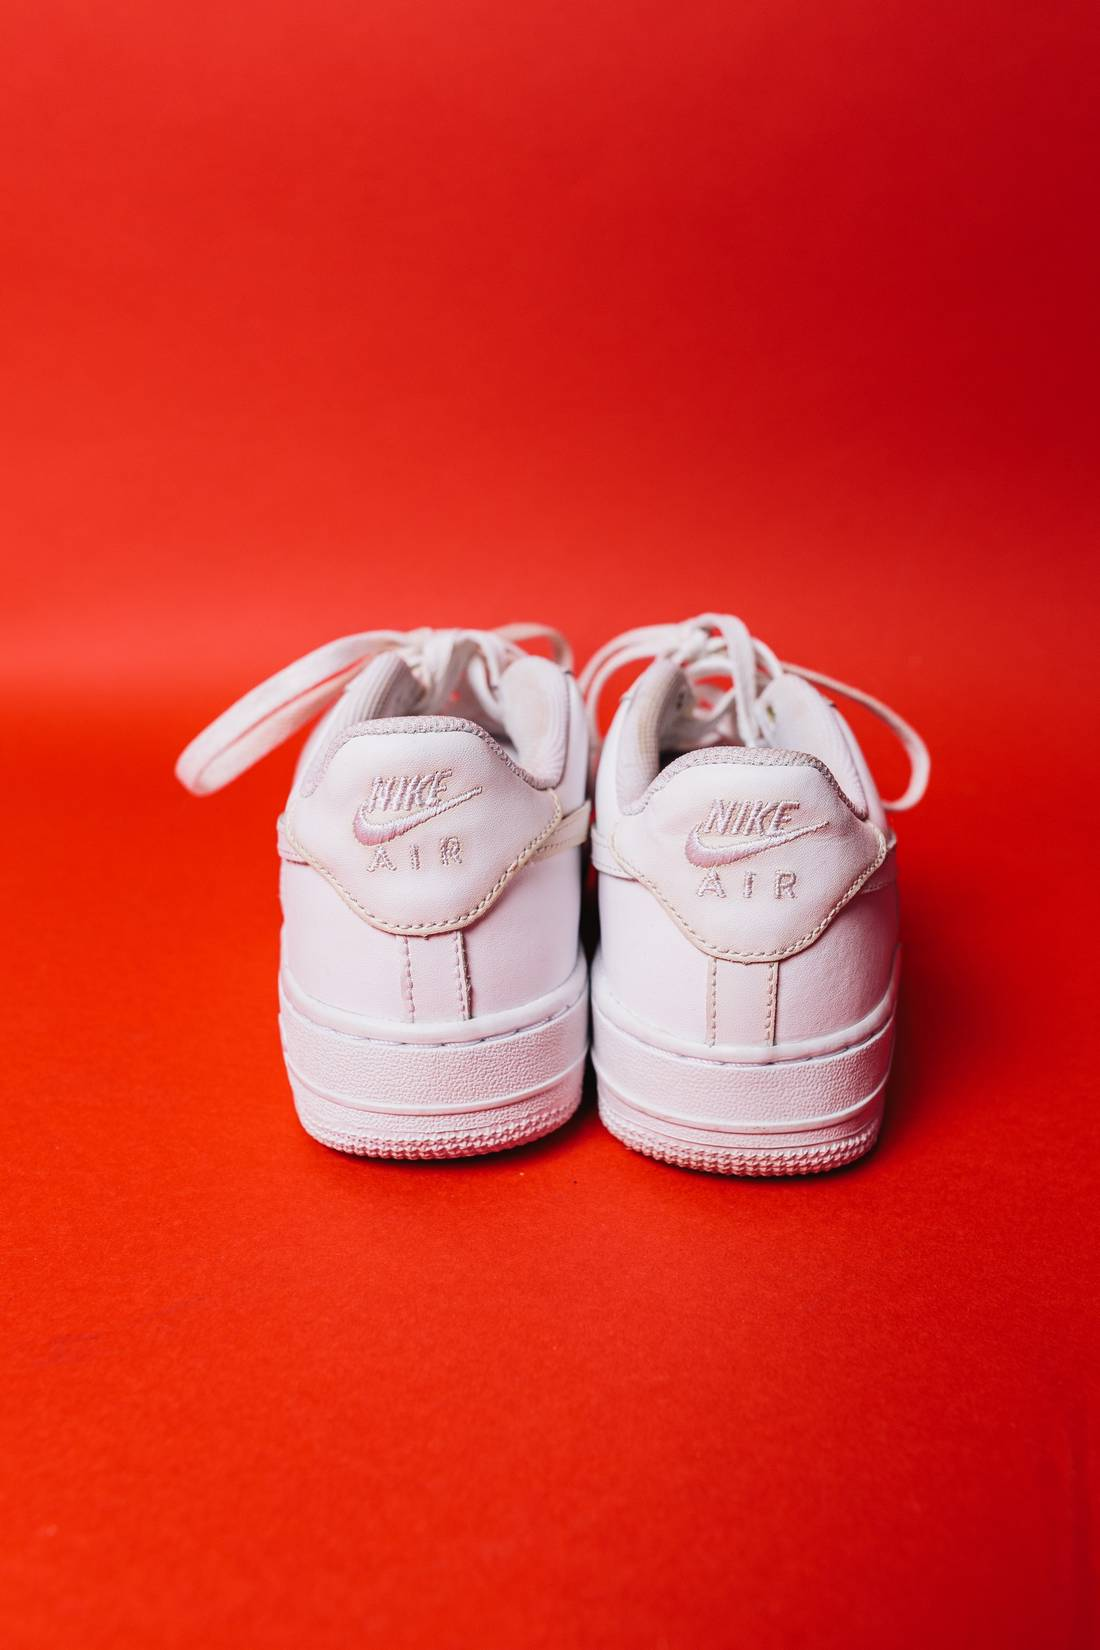 nike af1 air force 1 all white size 5 5 fazos size 5 5 low top